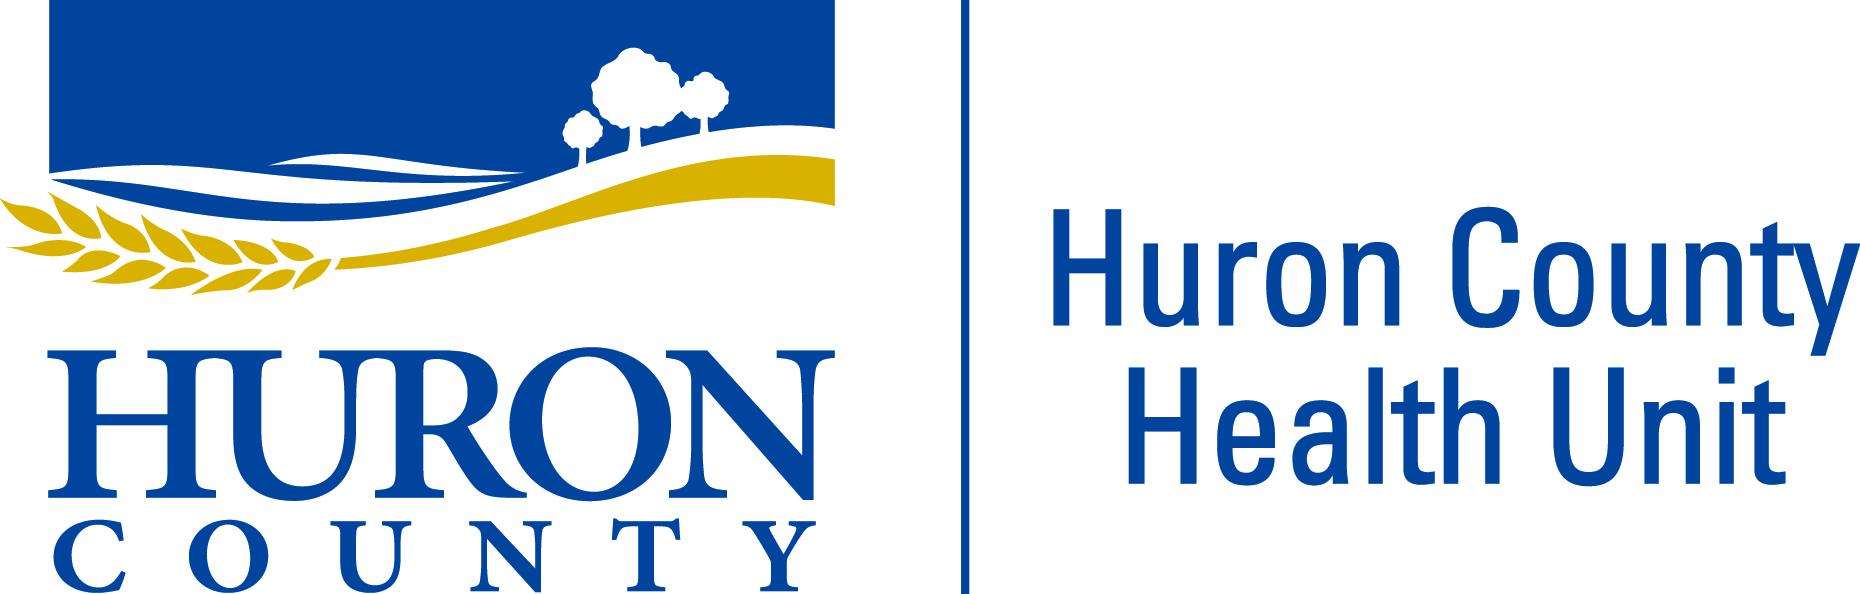 Huron County Health Unit